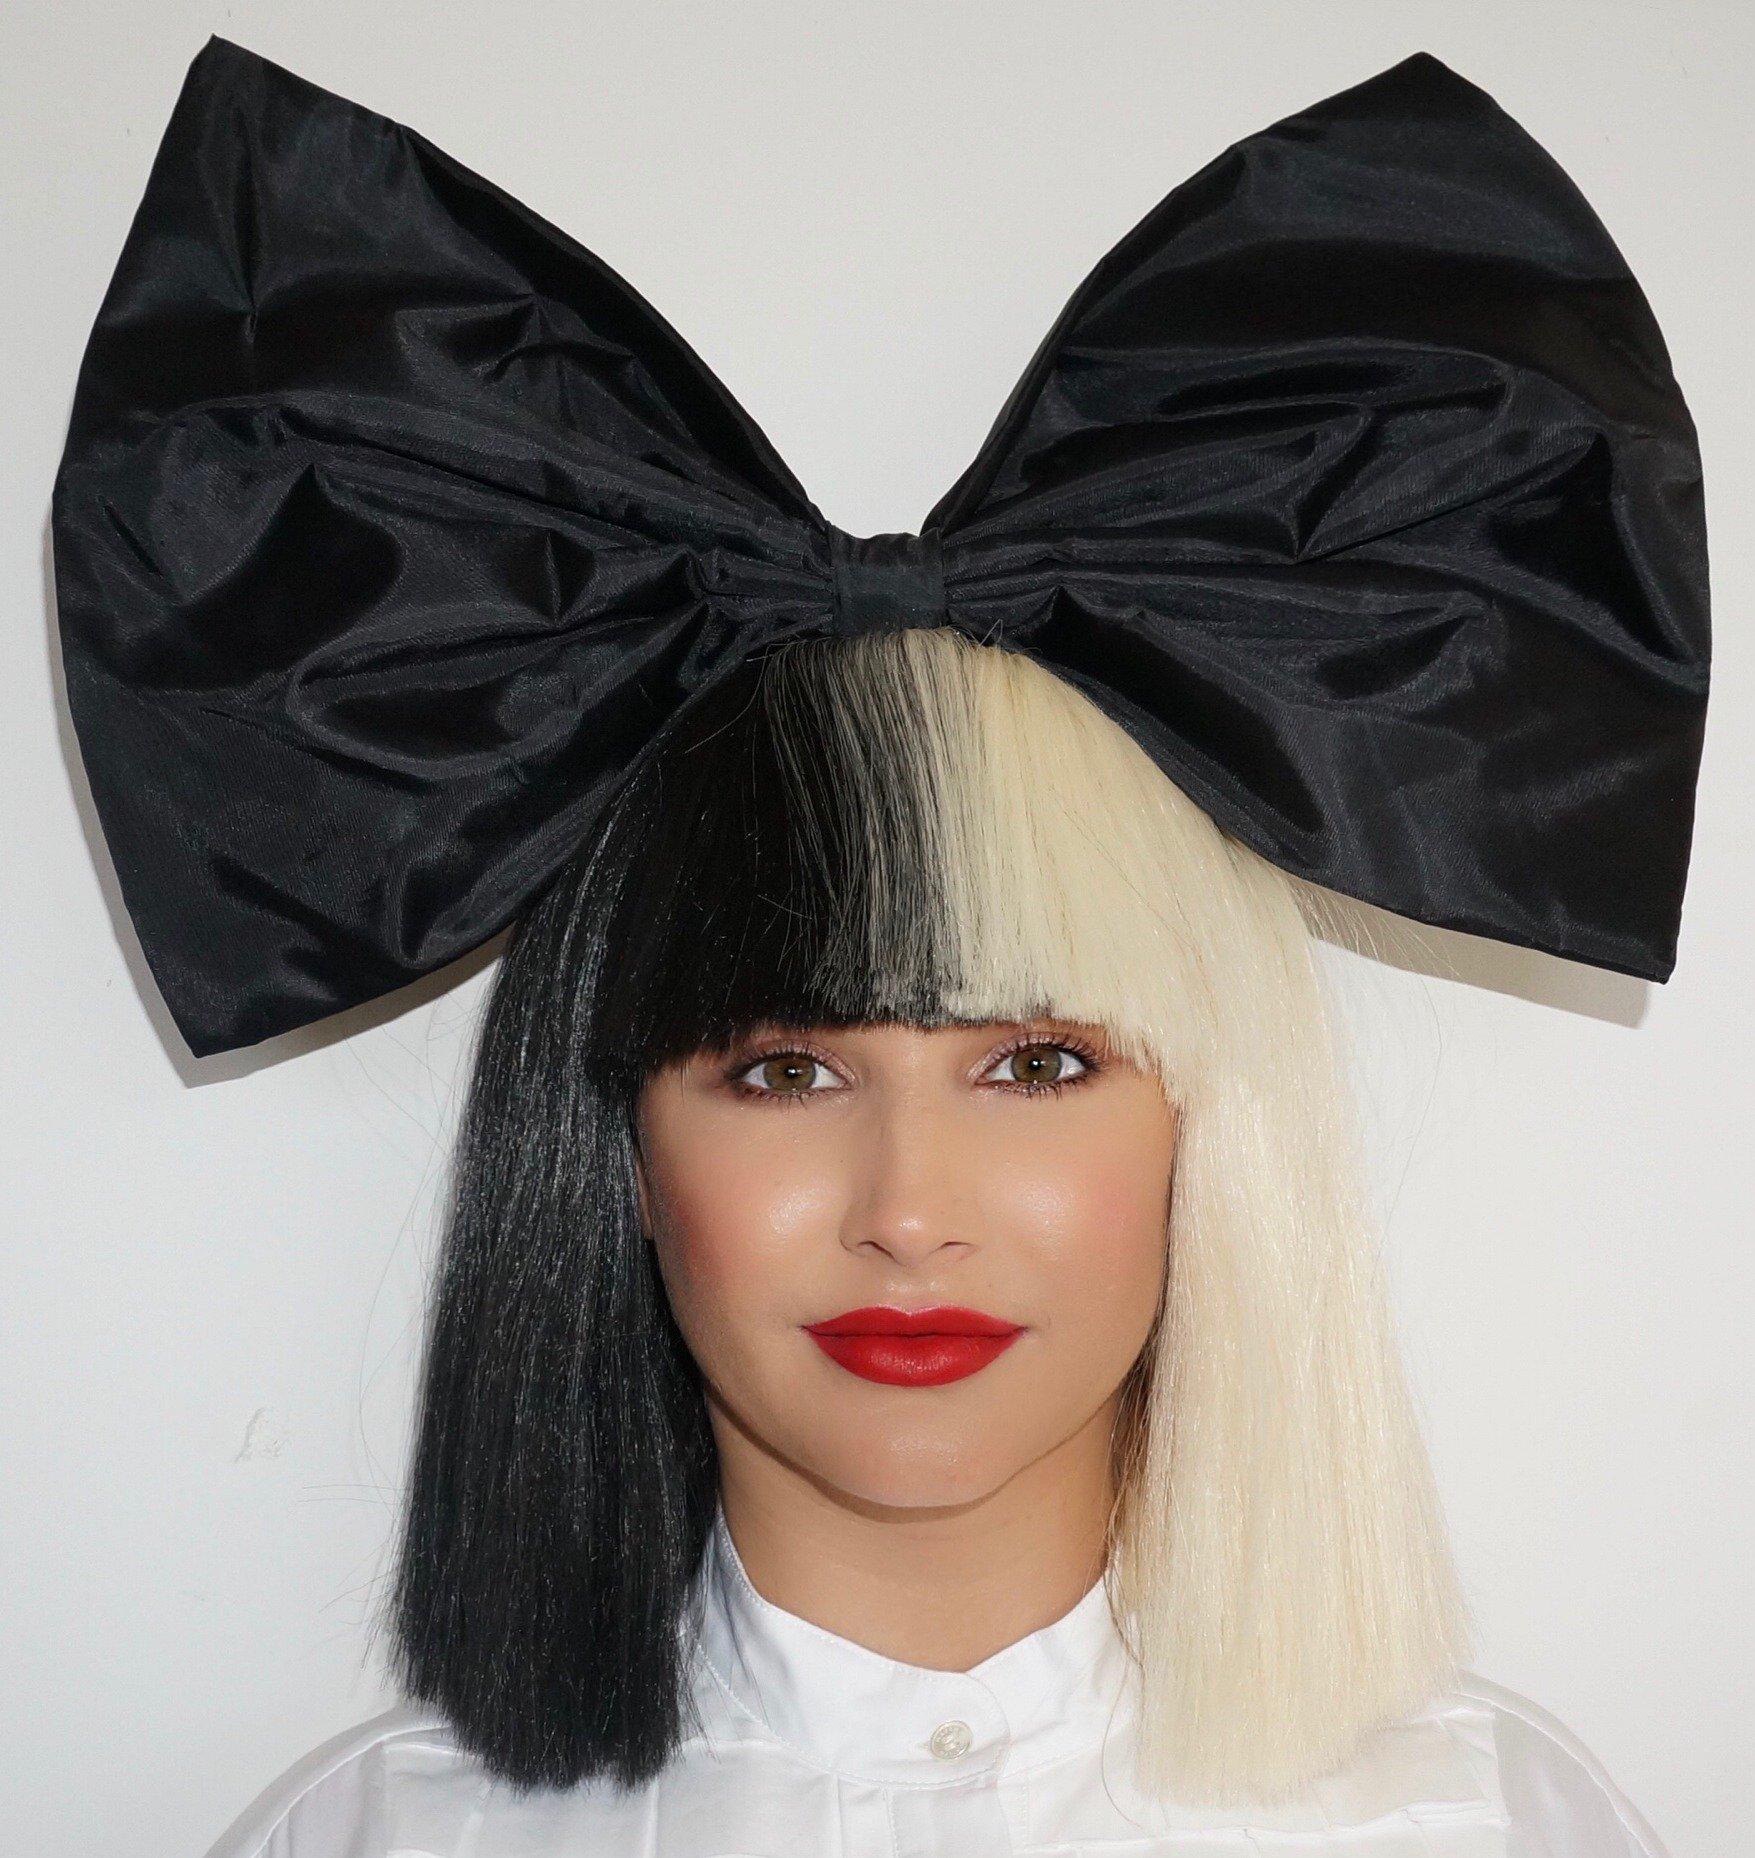 Don't be caught �� without your Sia wig this Halloween https://t.co/bIWfHKddod - Team Sia https://t.co/jGV2buMLDr